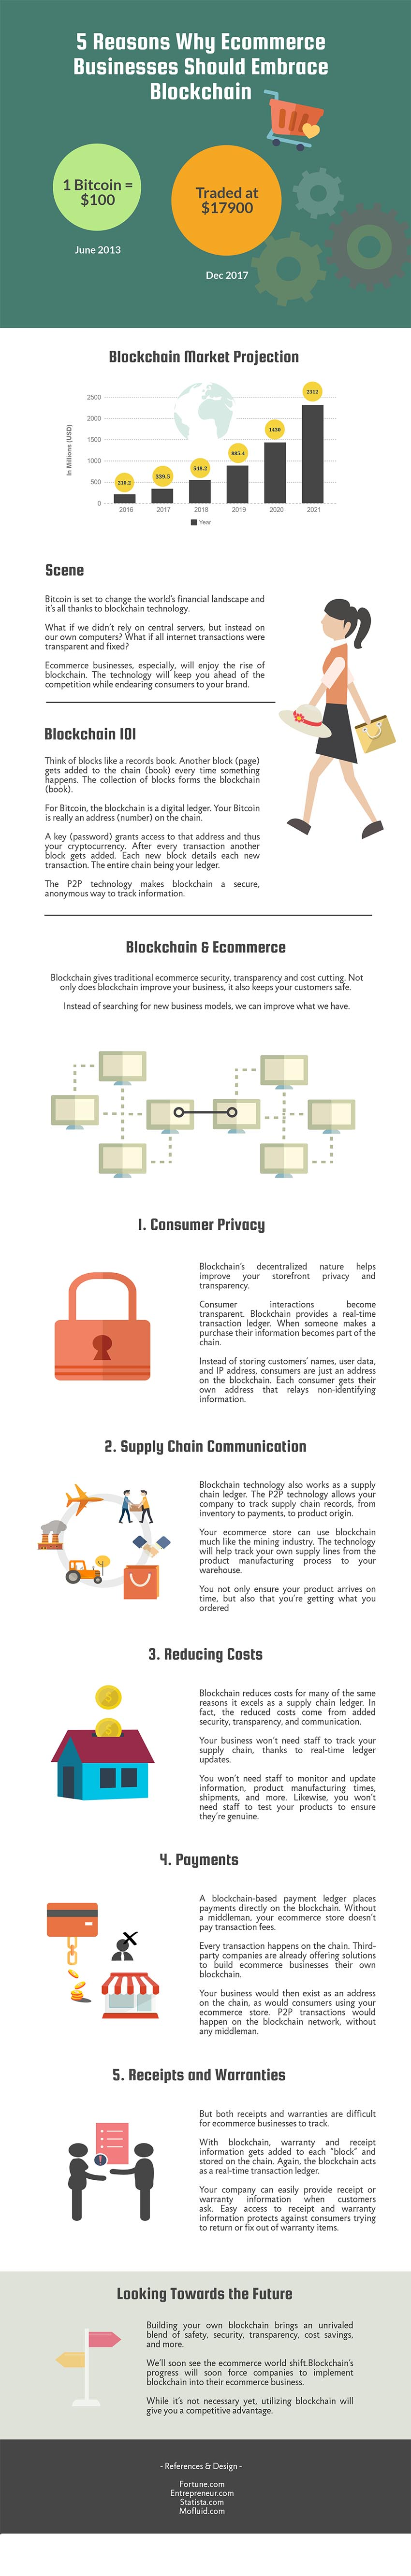 blockchain_infographic_mofluid